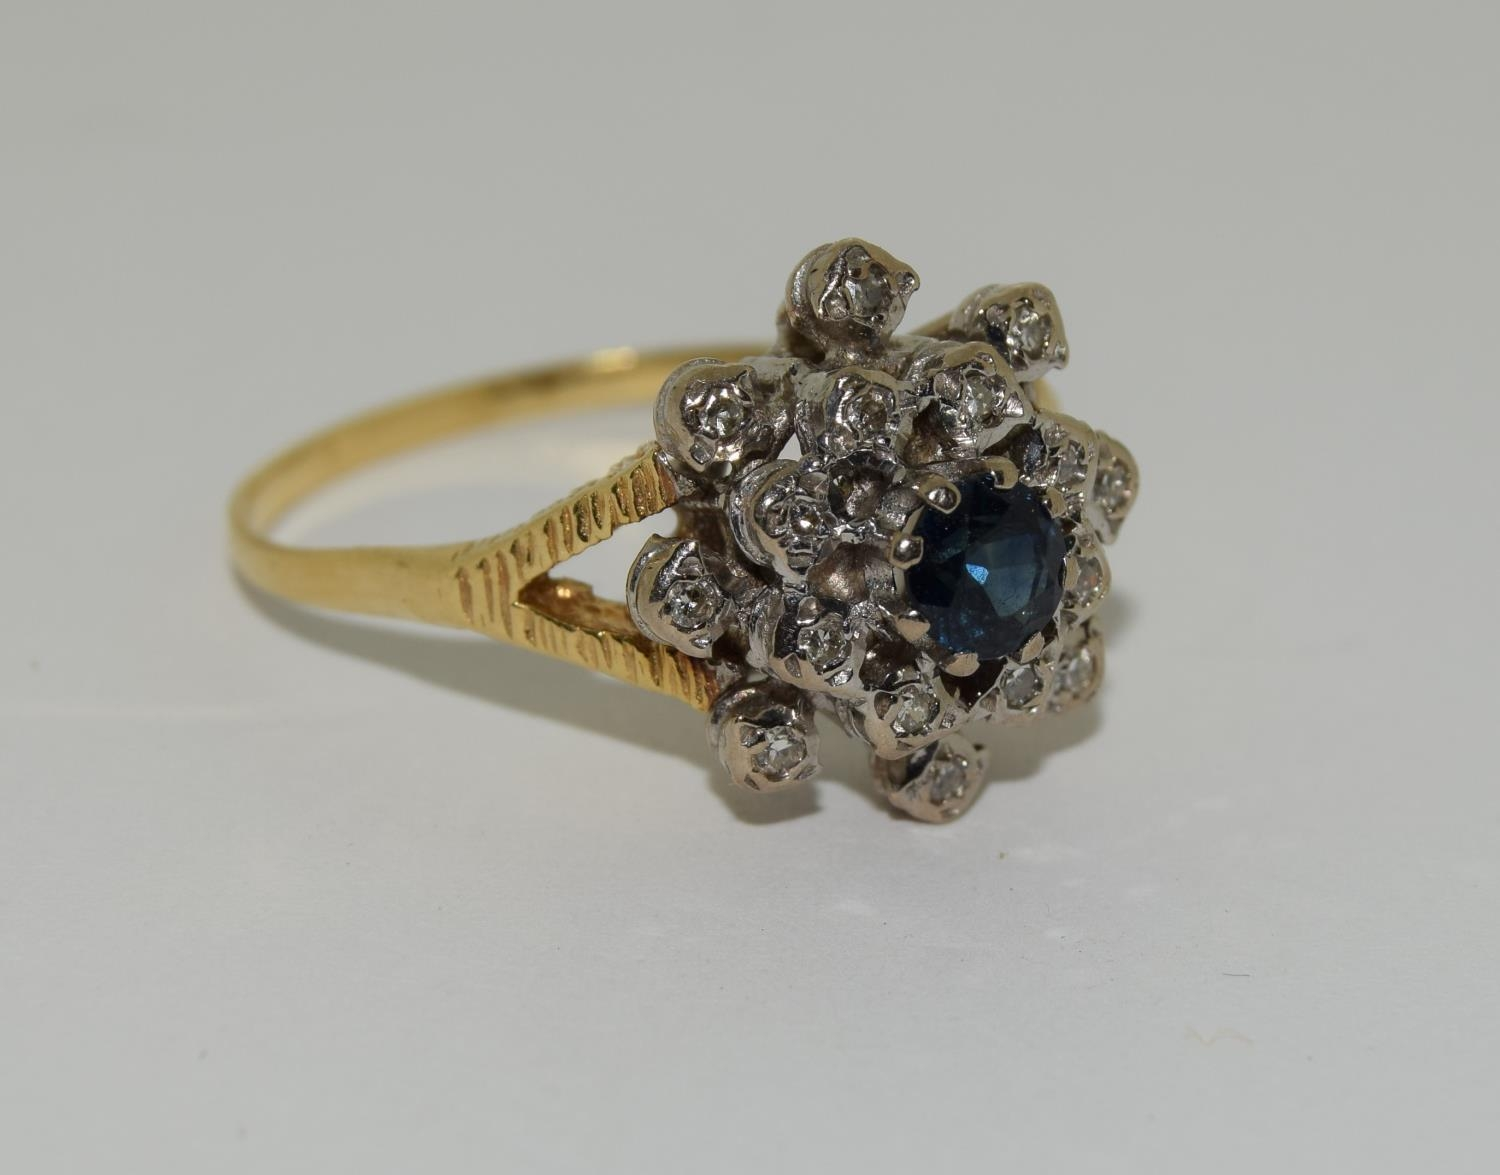 18ct gold diamond and sapphire ring - approx 0.80 dia. Size O. - Image 5 of 6